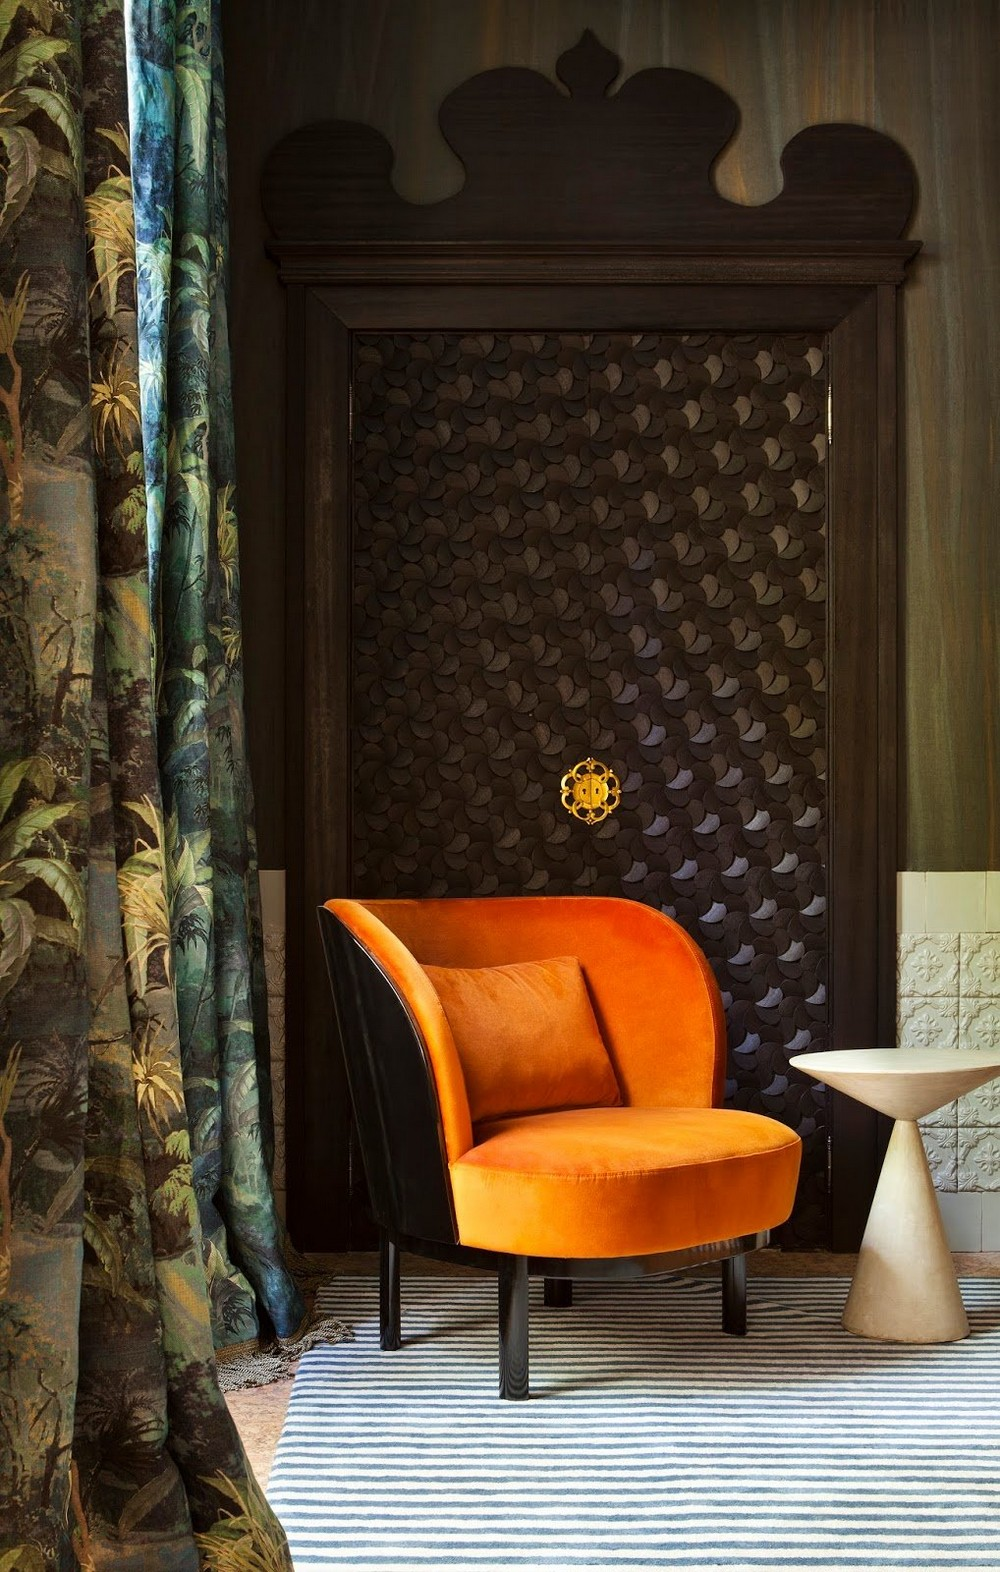 Pepe Leal: Statement Furniture, Eclectic Ideas and Charming Interiors